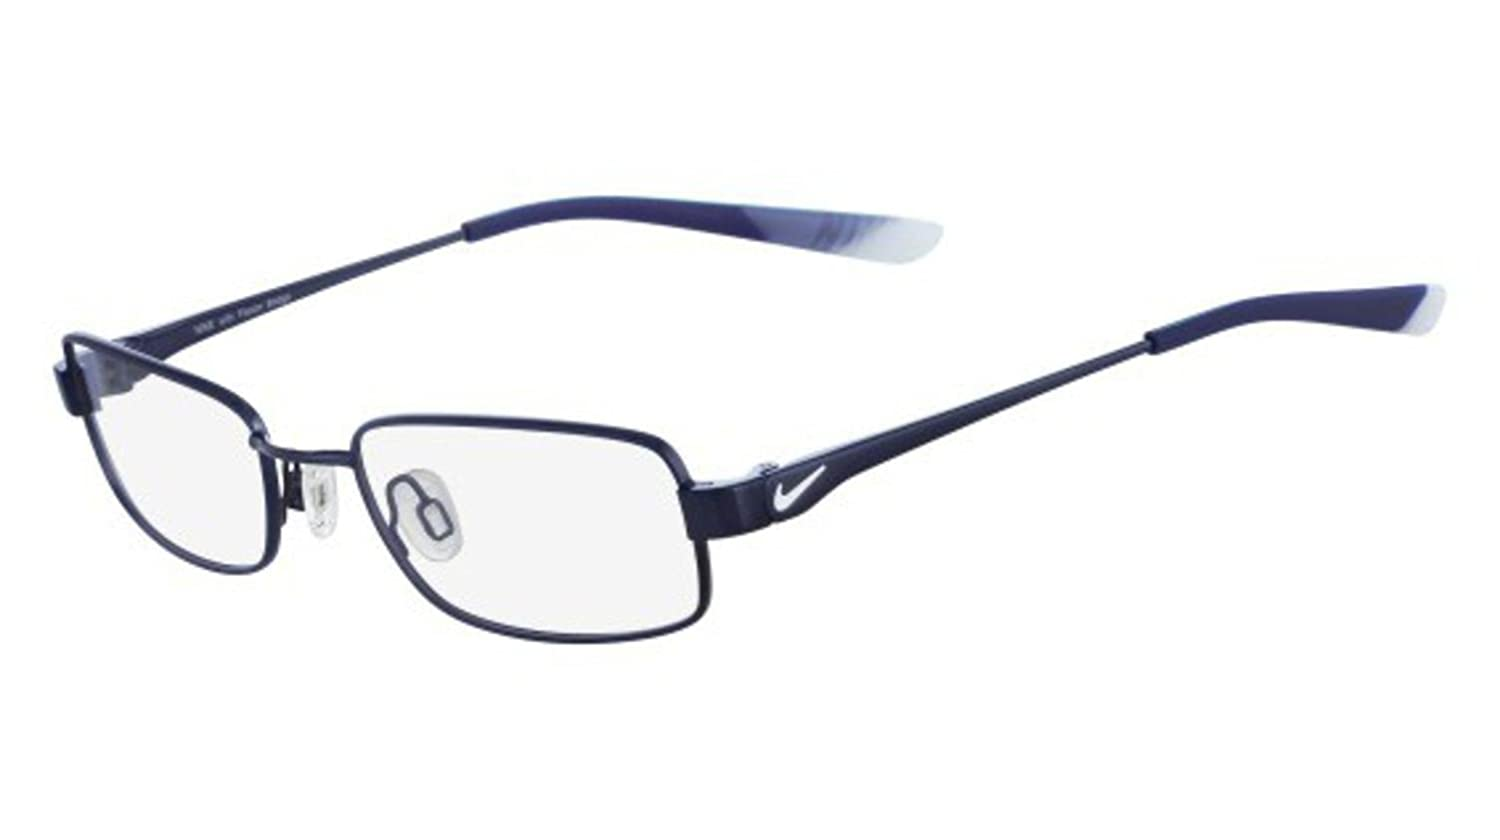 9e348f9bd7b4 Amazon.com: Eyeglasses NIKE 4637 427 BLUE/PURE PLATINUM: Shoes